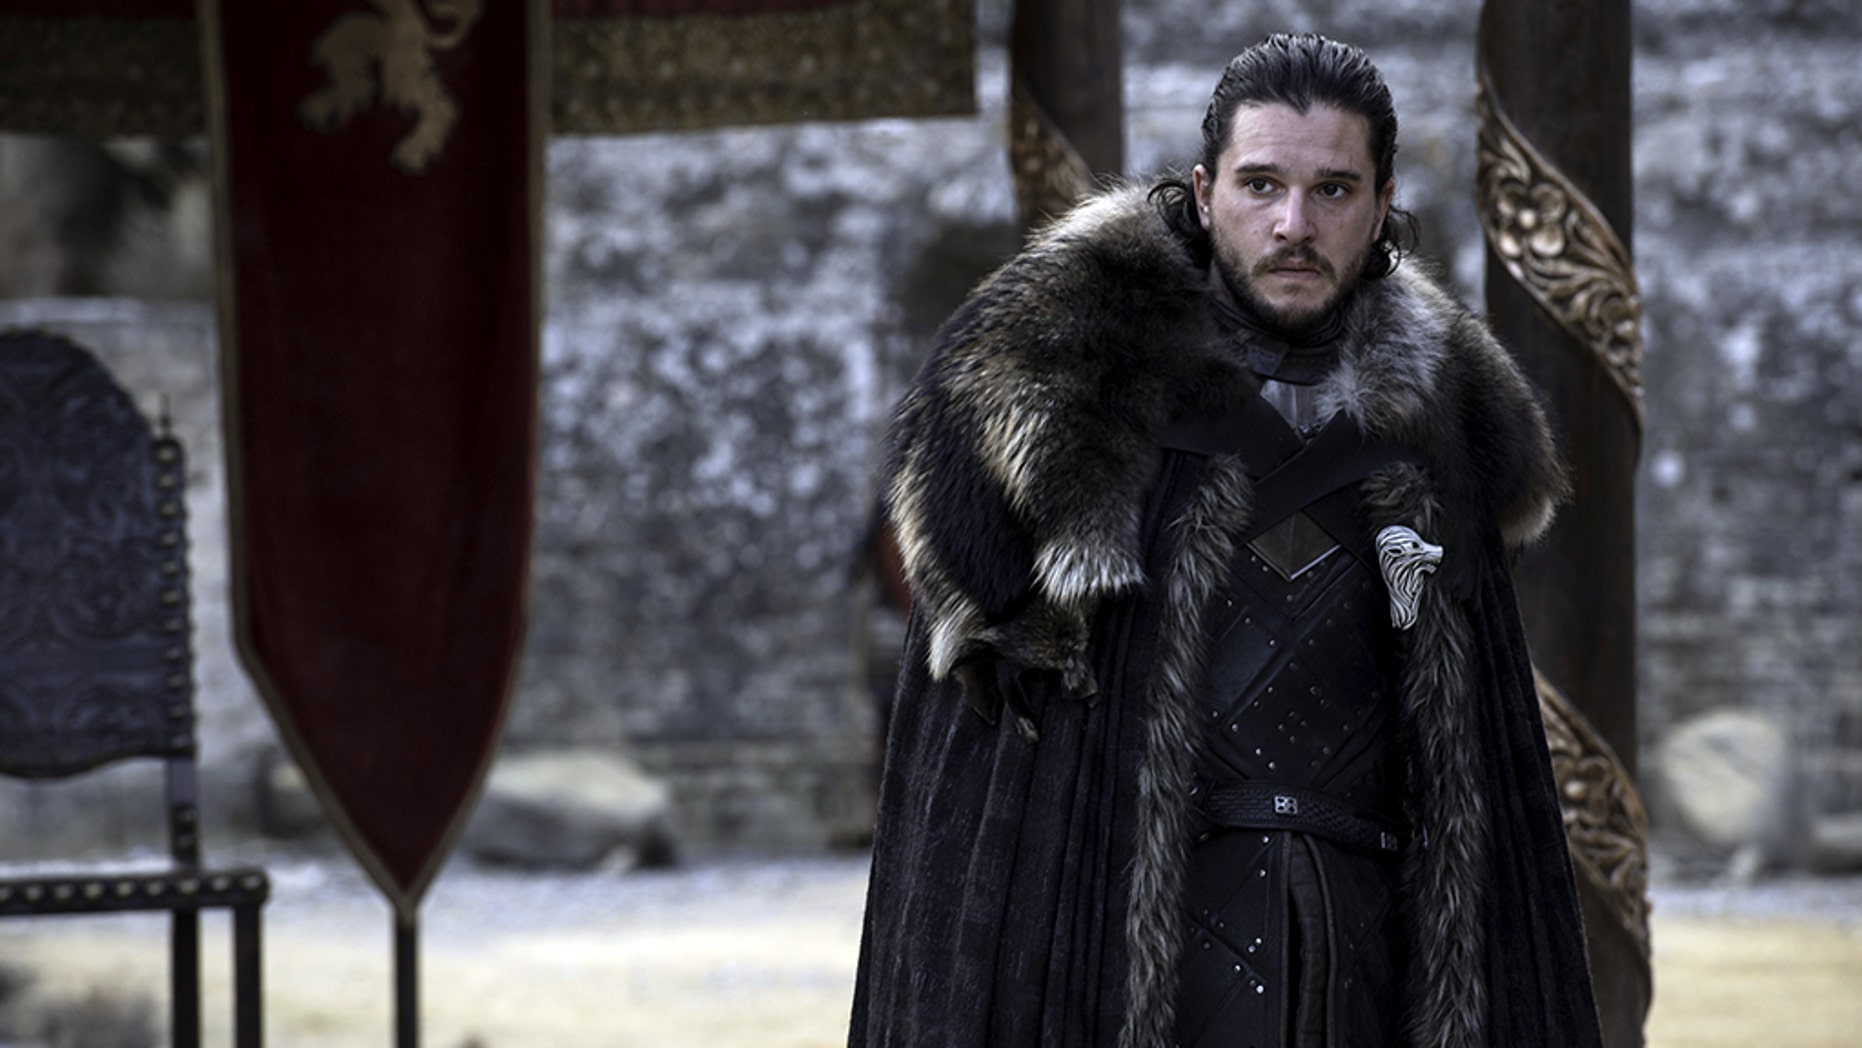 Kit Harington plays Jon Snow in HBO hit series